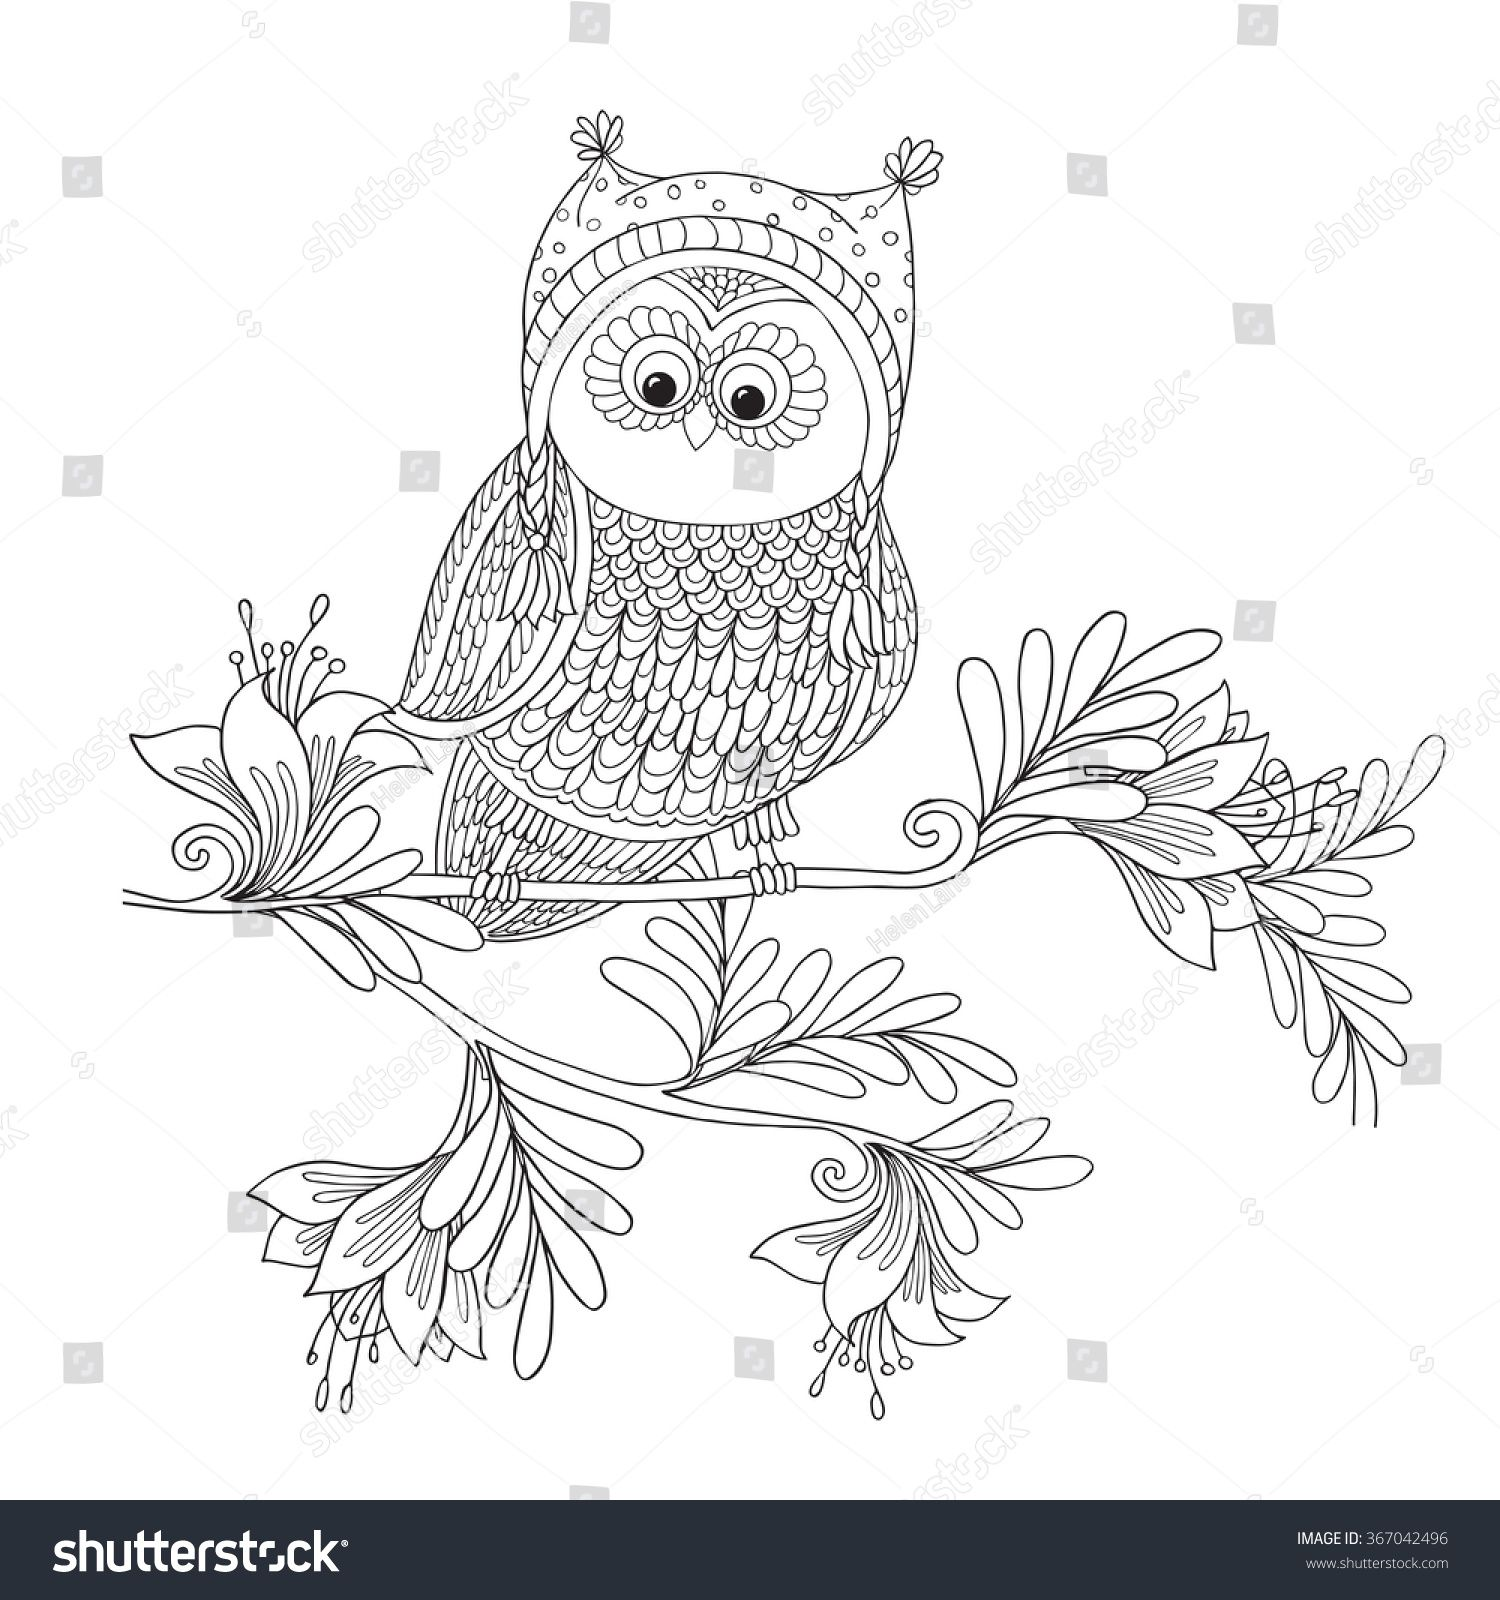 Cute Owl Outline Coloring Coloring Pages